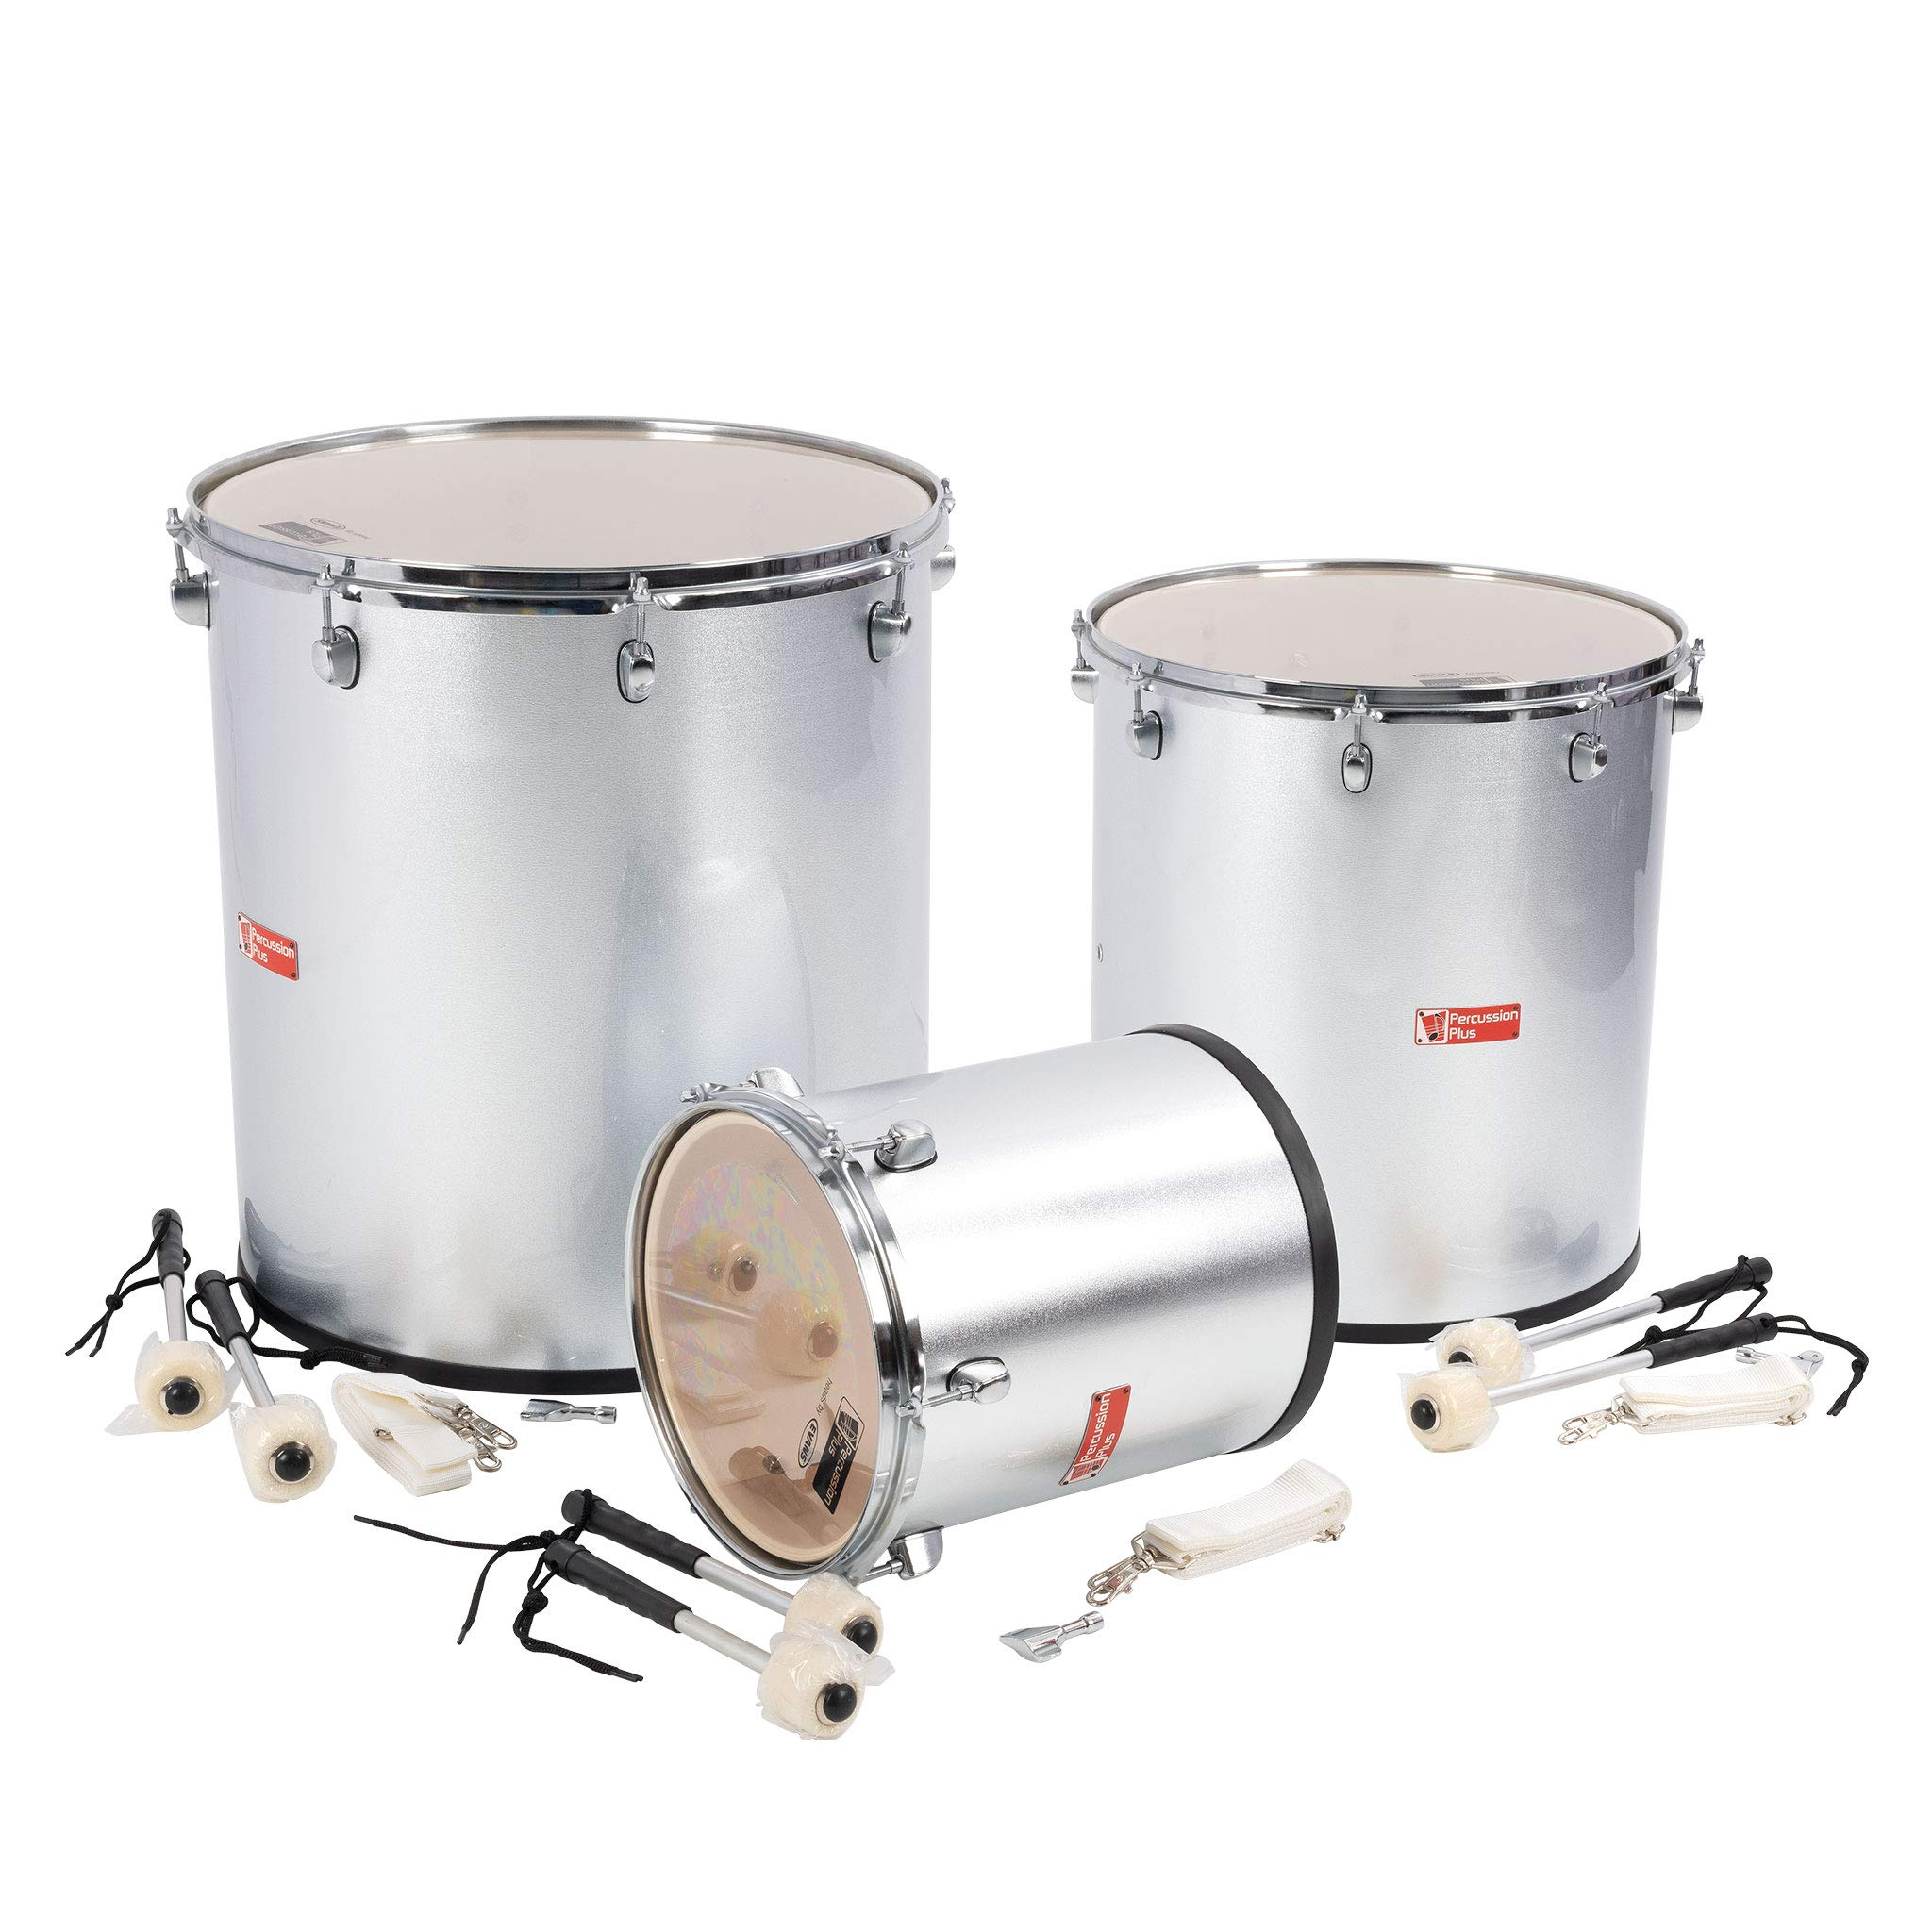 Percussion Plus PP780 Samba Drums in Silver Matt Finish (Set of 3) by Percussion Plus